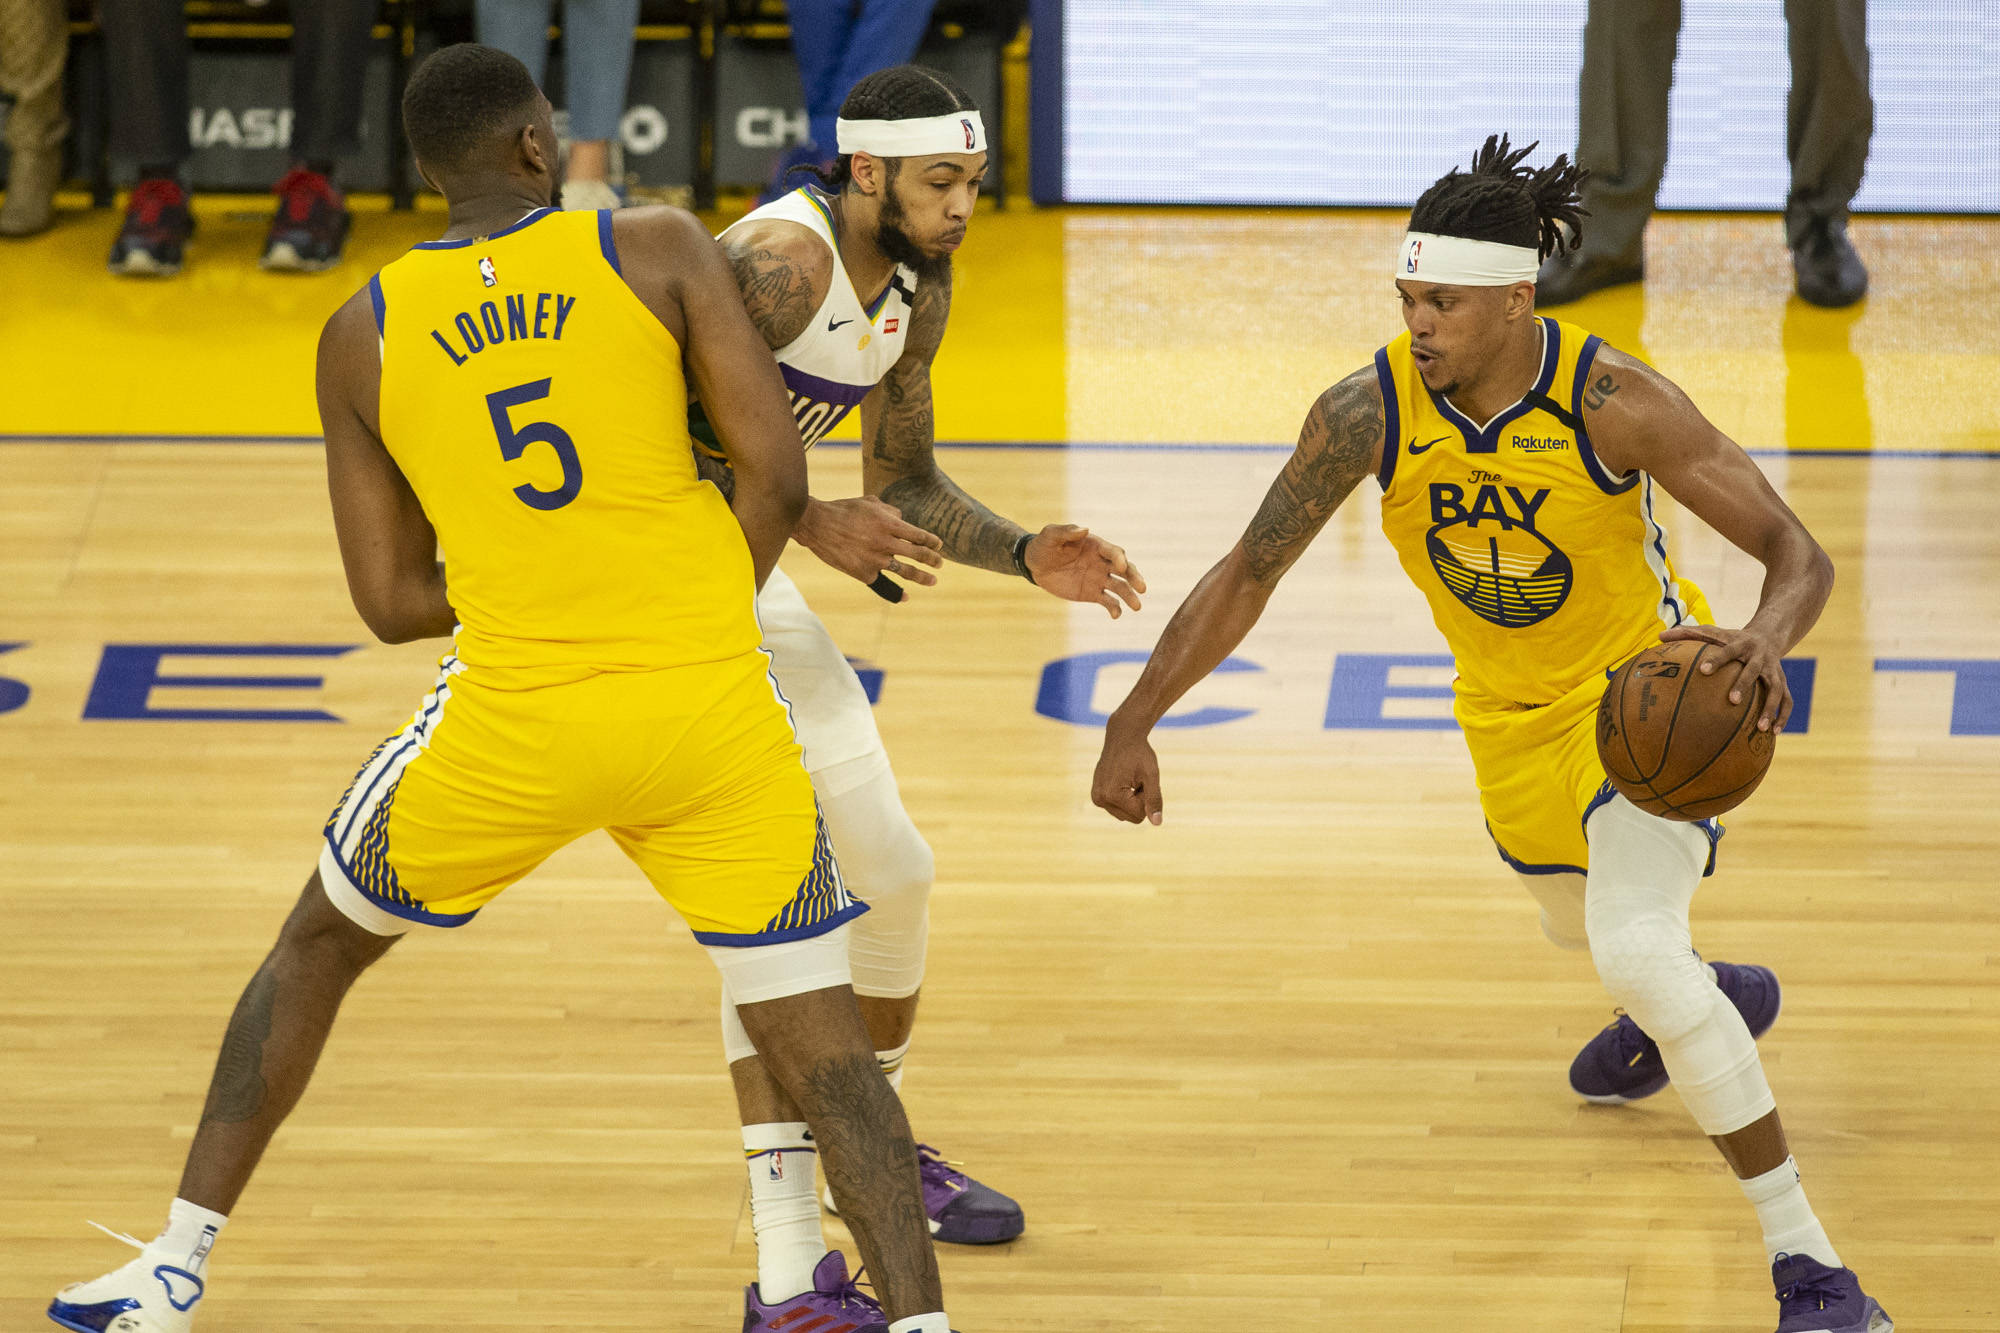 Golden State Warriors guard Damion Lee (1) gets a screen on New Orleans Pelicans forward Brandon Ingram (14) by Golden State Warriors center Kevon Looney (5) in the 2nd quarter at Chase Center in San Francisco, California on February 23, 2019. Photography by Chris Victorio | Special to the S.F. Examiner